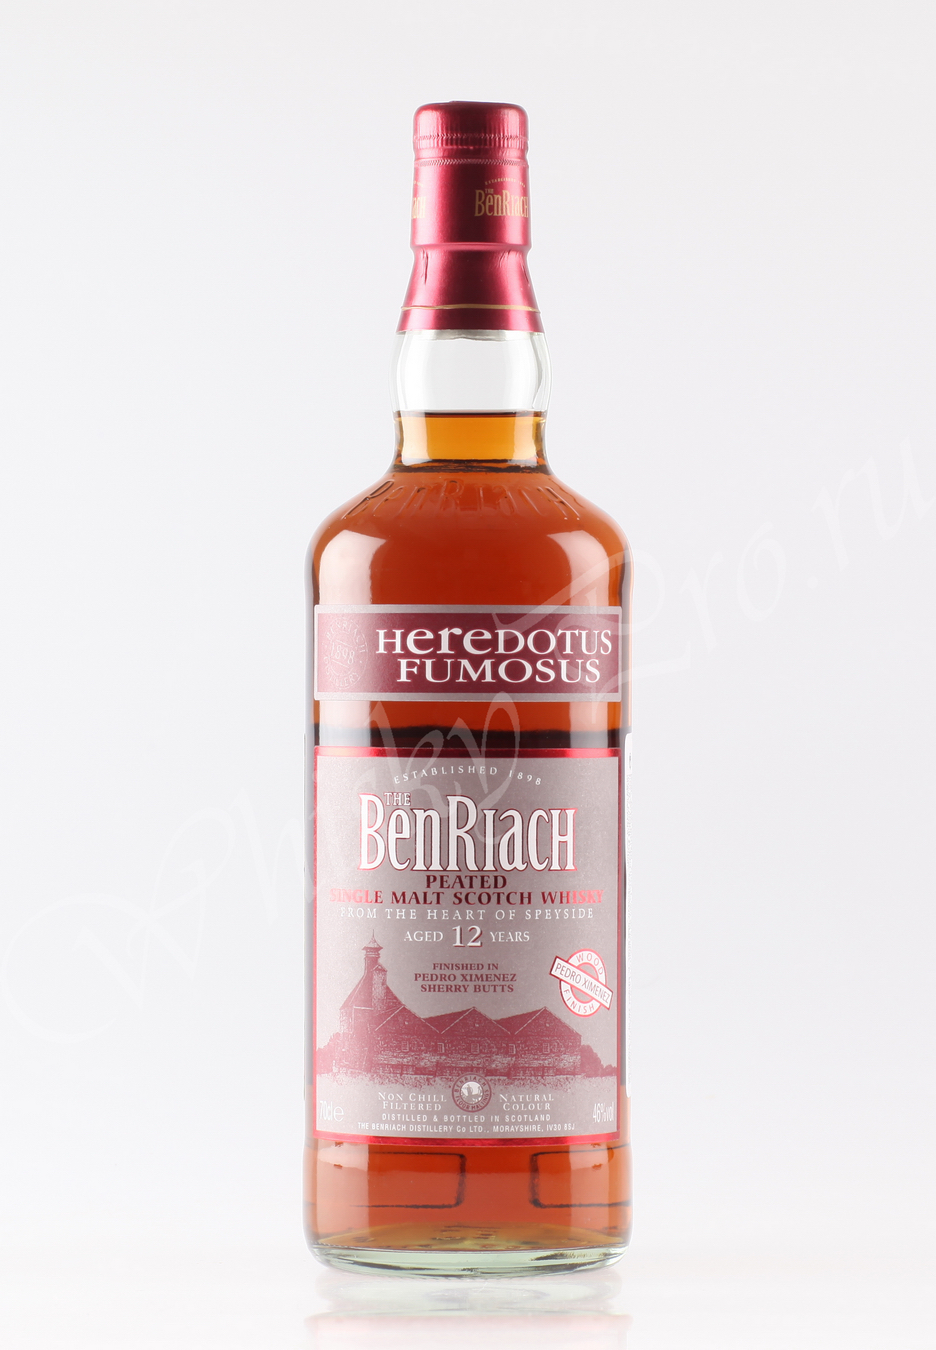 Benriach 12 years Heredotus Fumosus